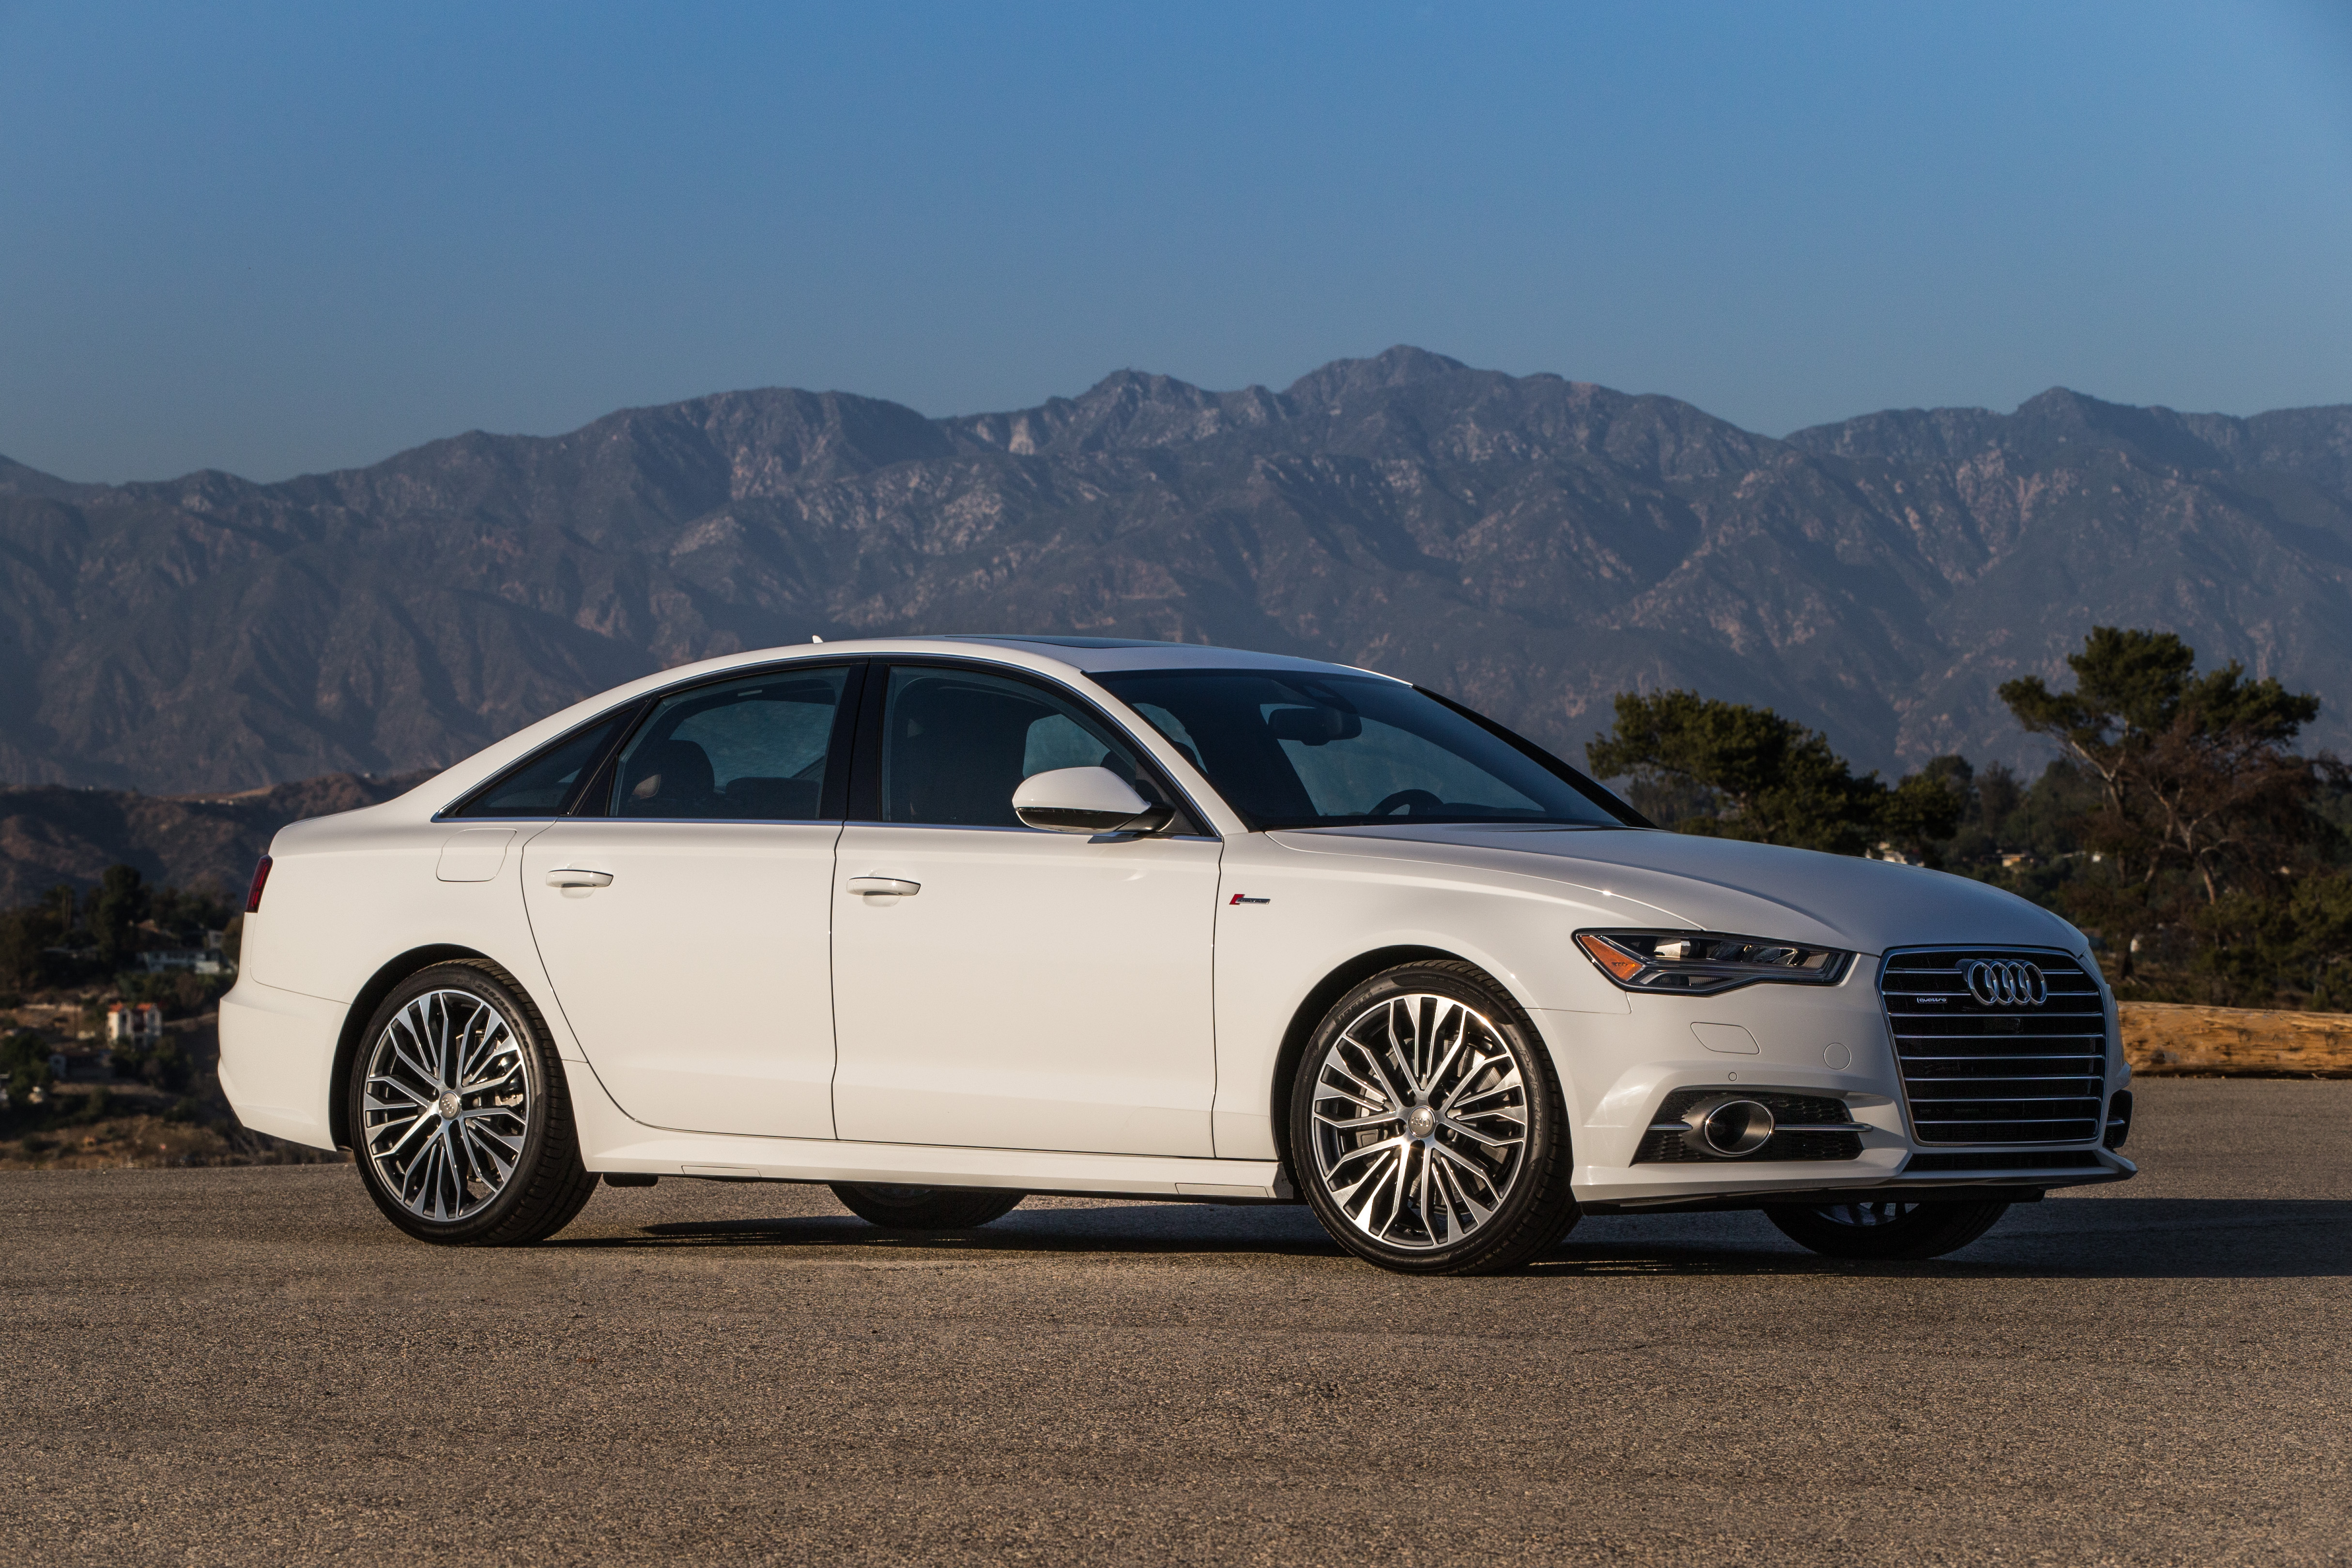 The 2012 to 2015 Audi A6 sedans were among the vehicles with zero fatalities in a recent IIHS report. A 2016 is shown here.